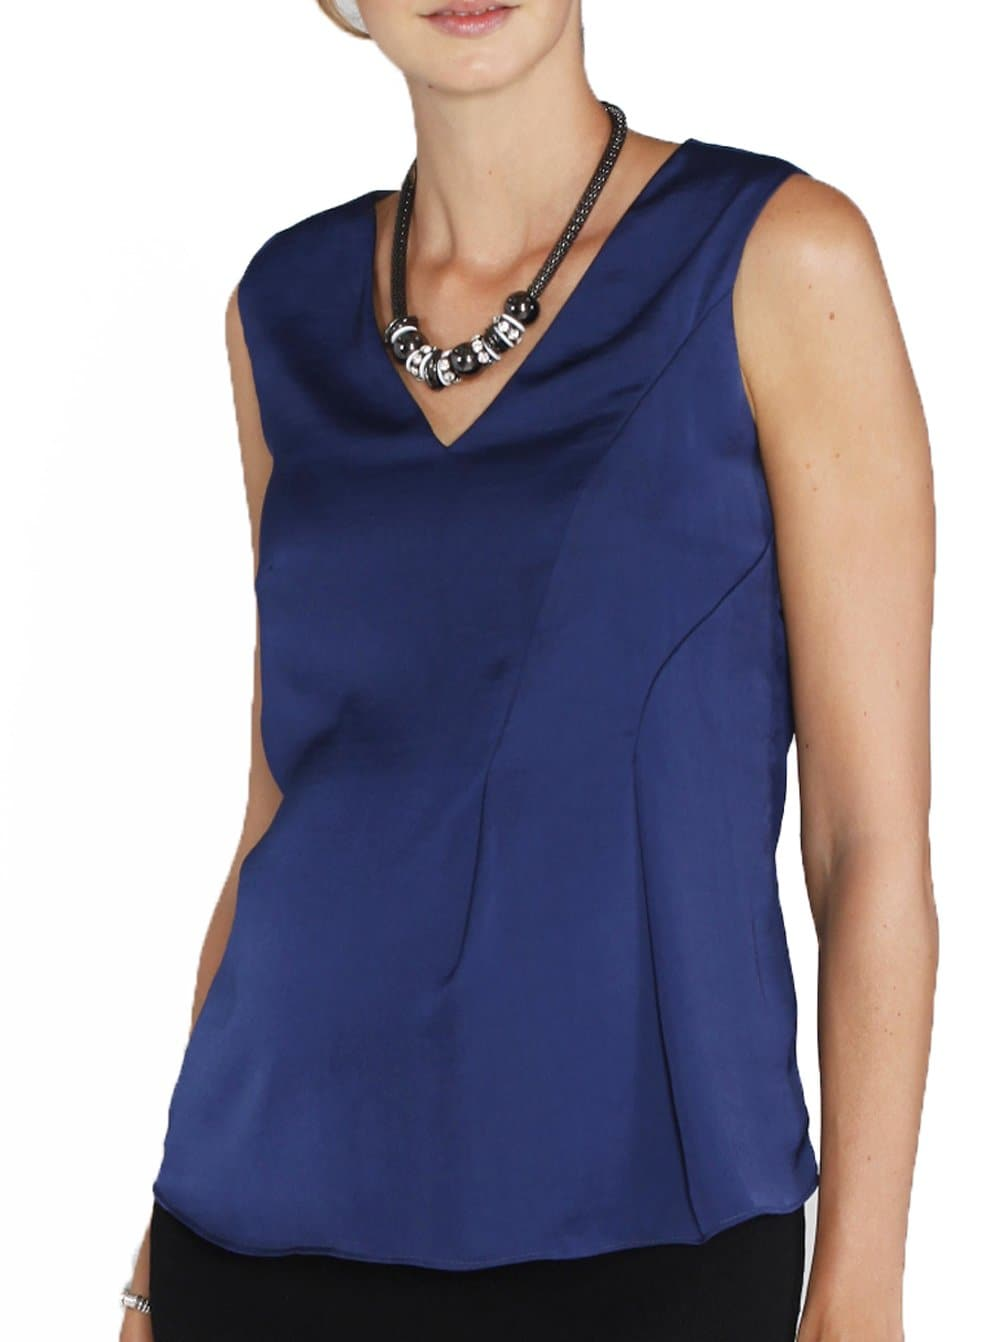 Maternity Sleeveless Chiffon Dressy Silk Top - Navy - Angel Maternity - Maternity clothes - shop online